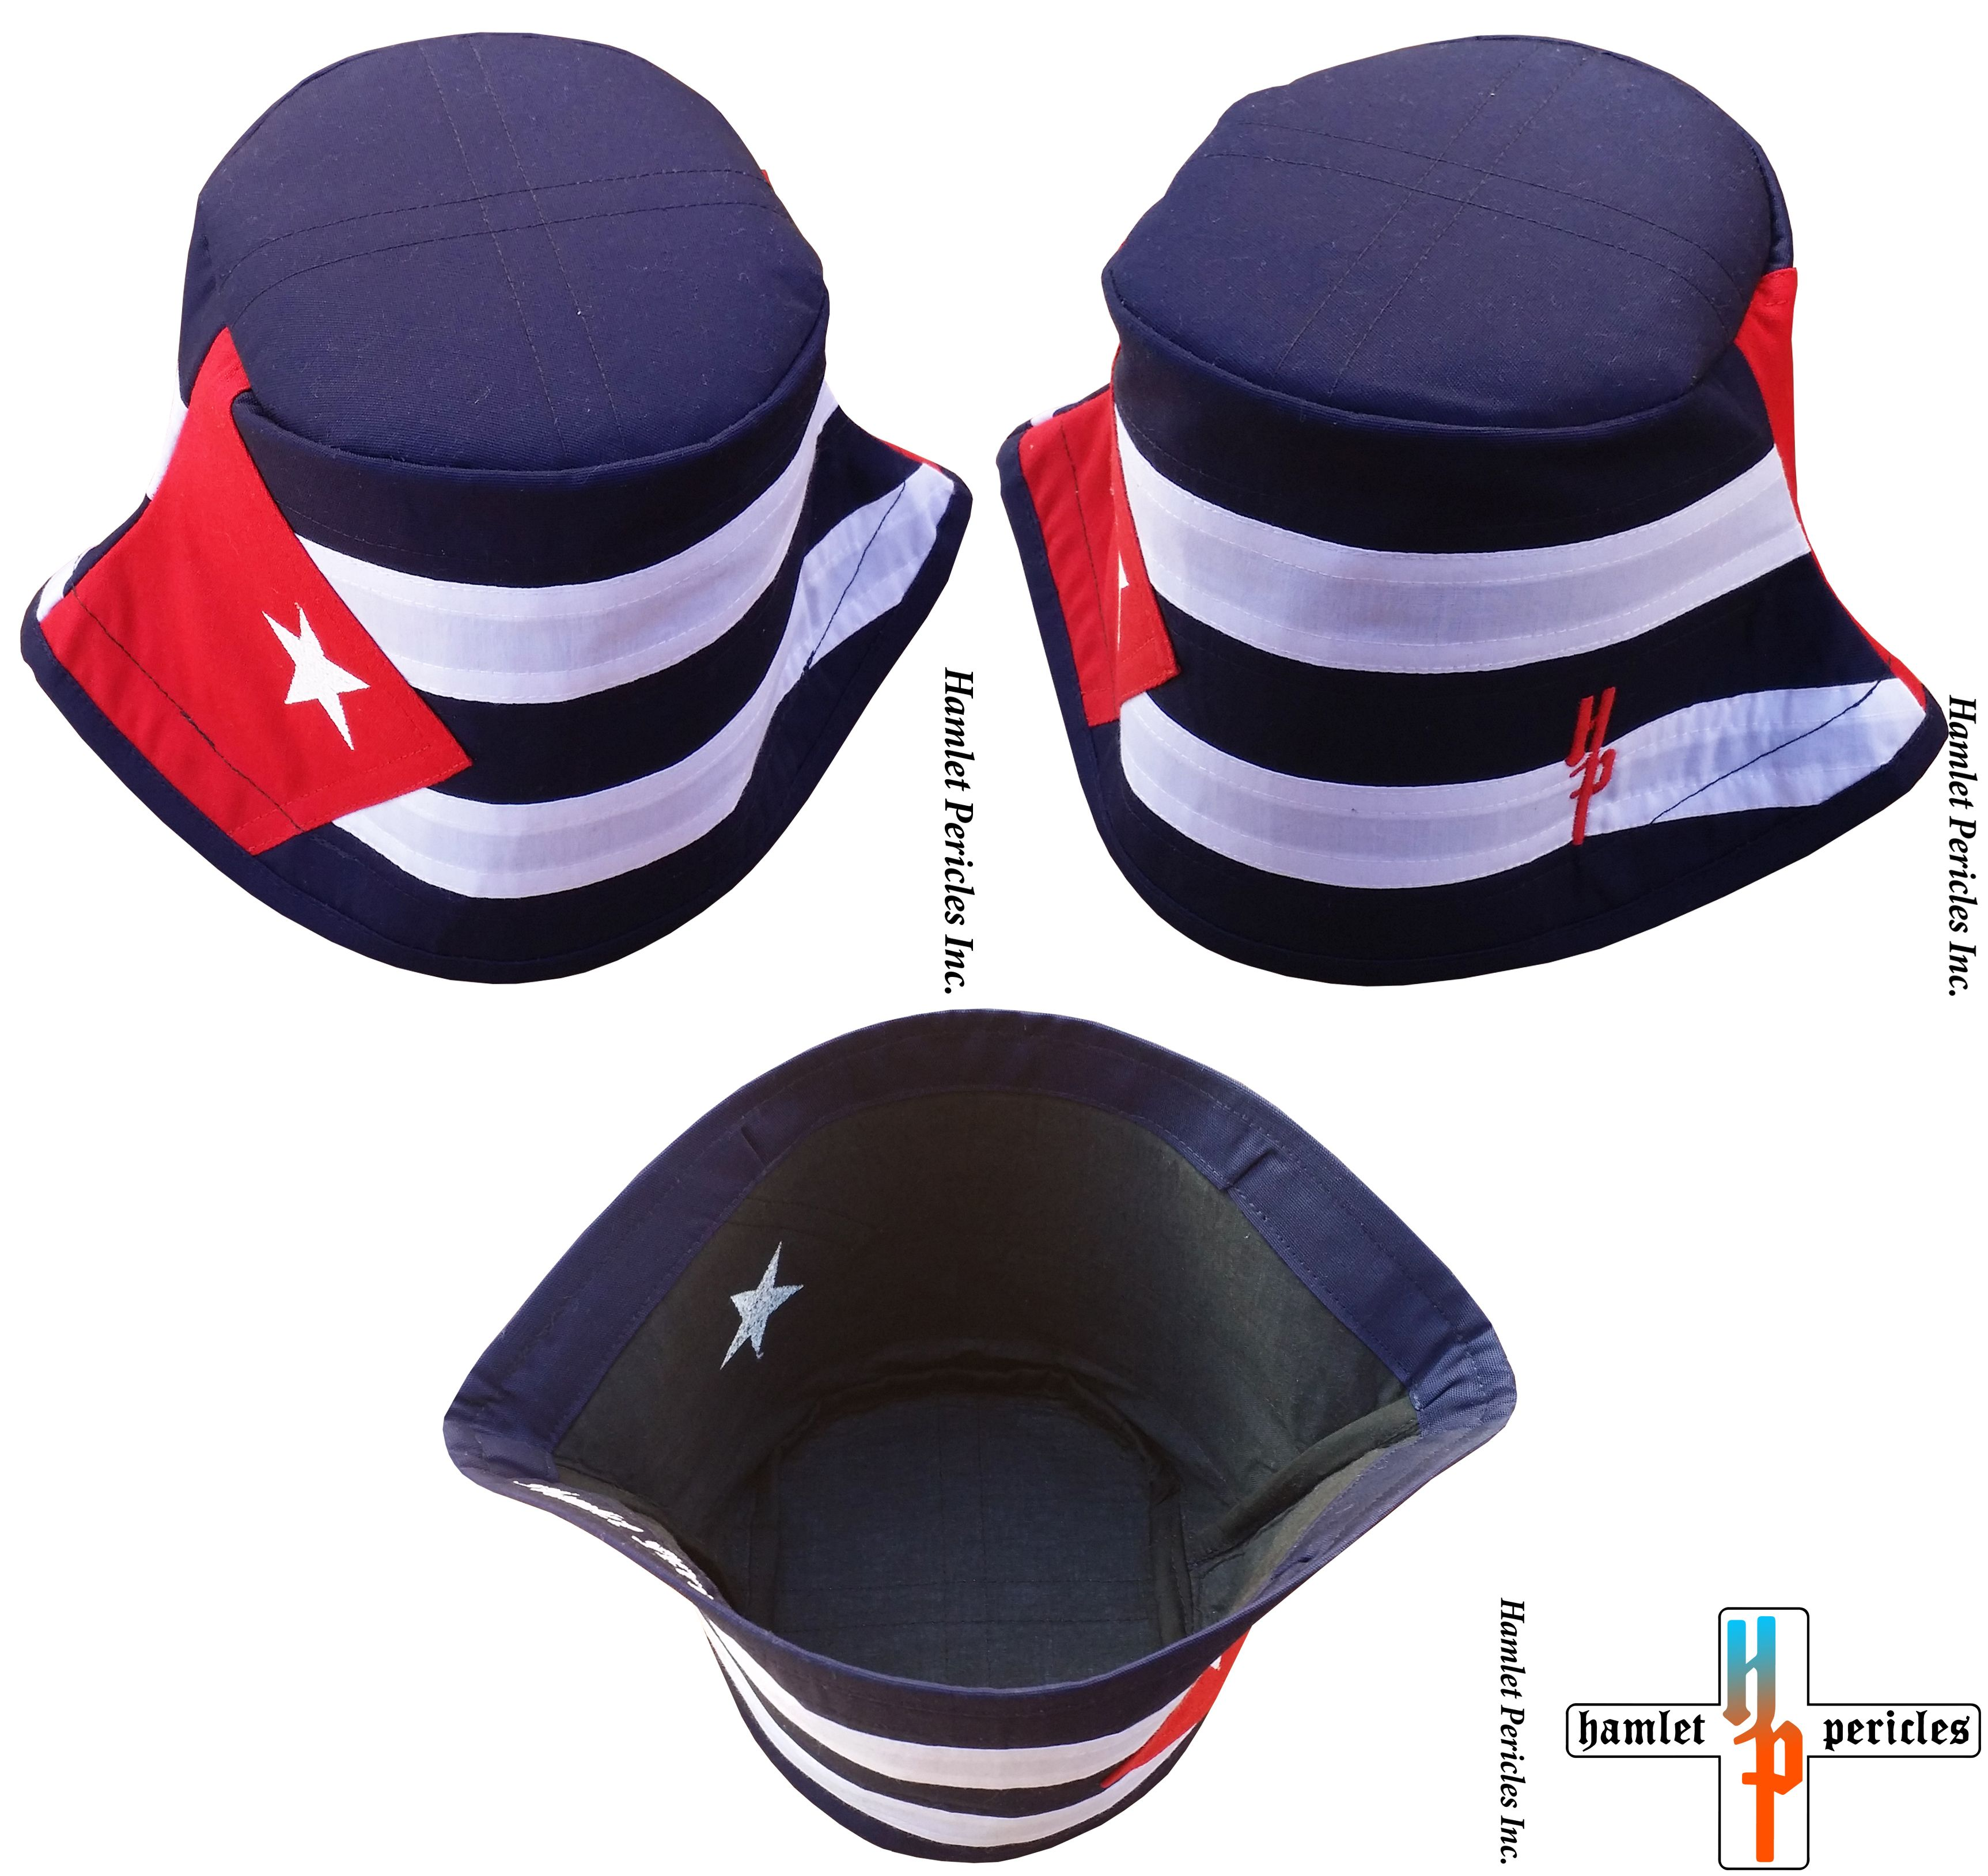 3e405ee52ca Cuba Flag Bucket hat via Hamlet Pericles